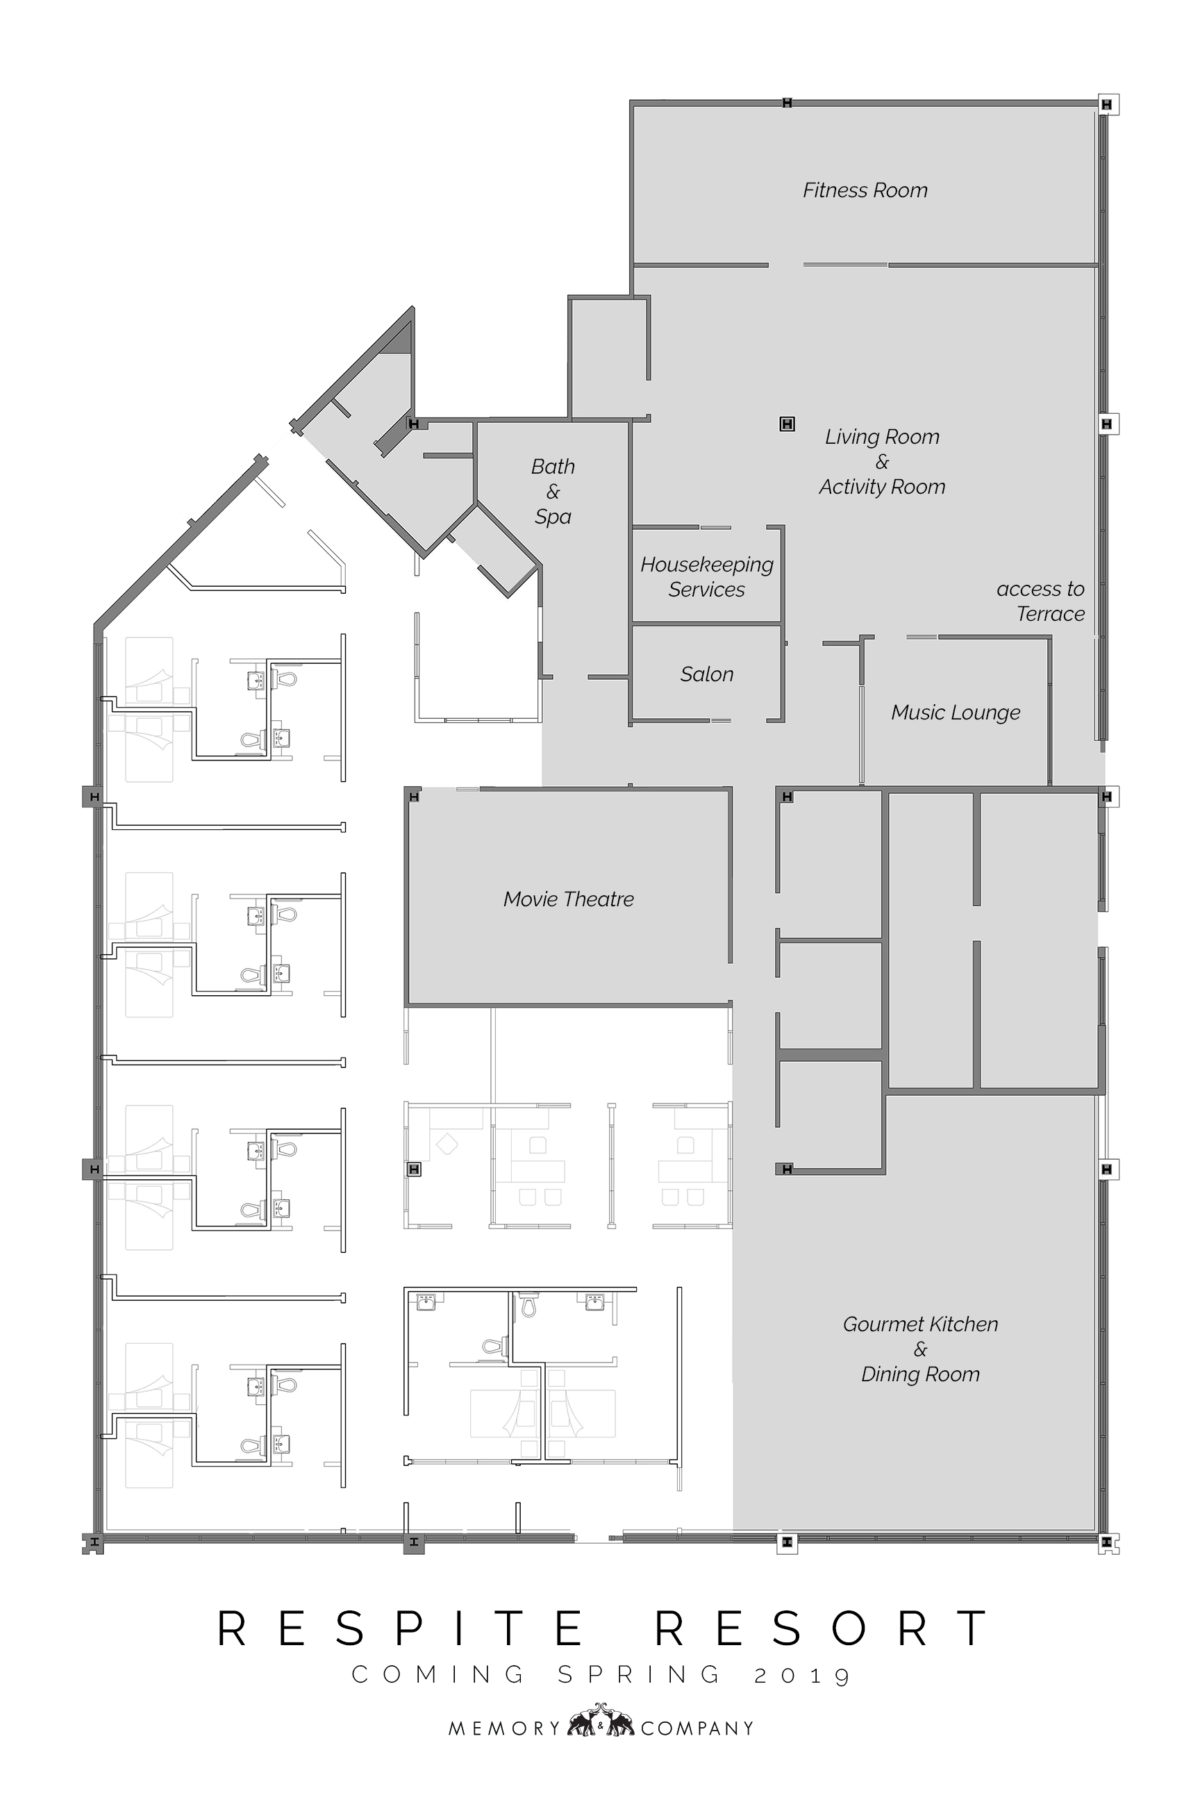 Memory & Company Respite Resort floor plan